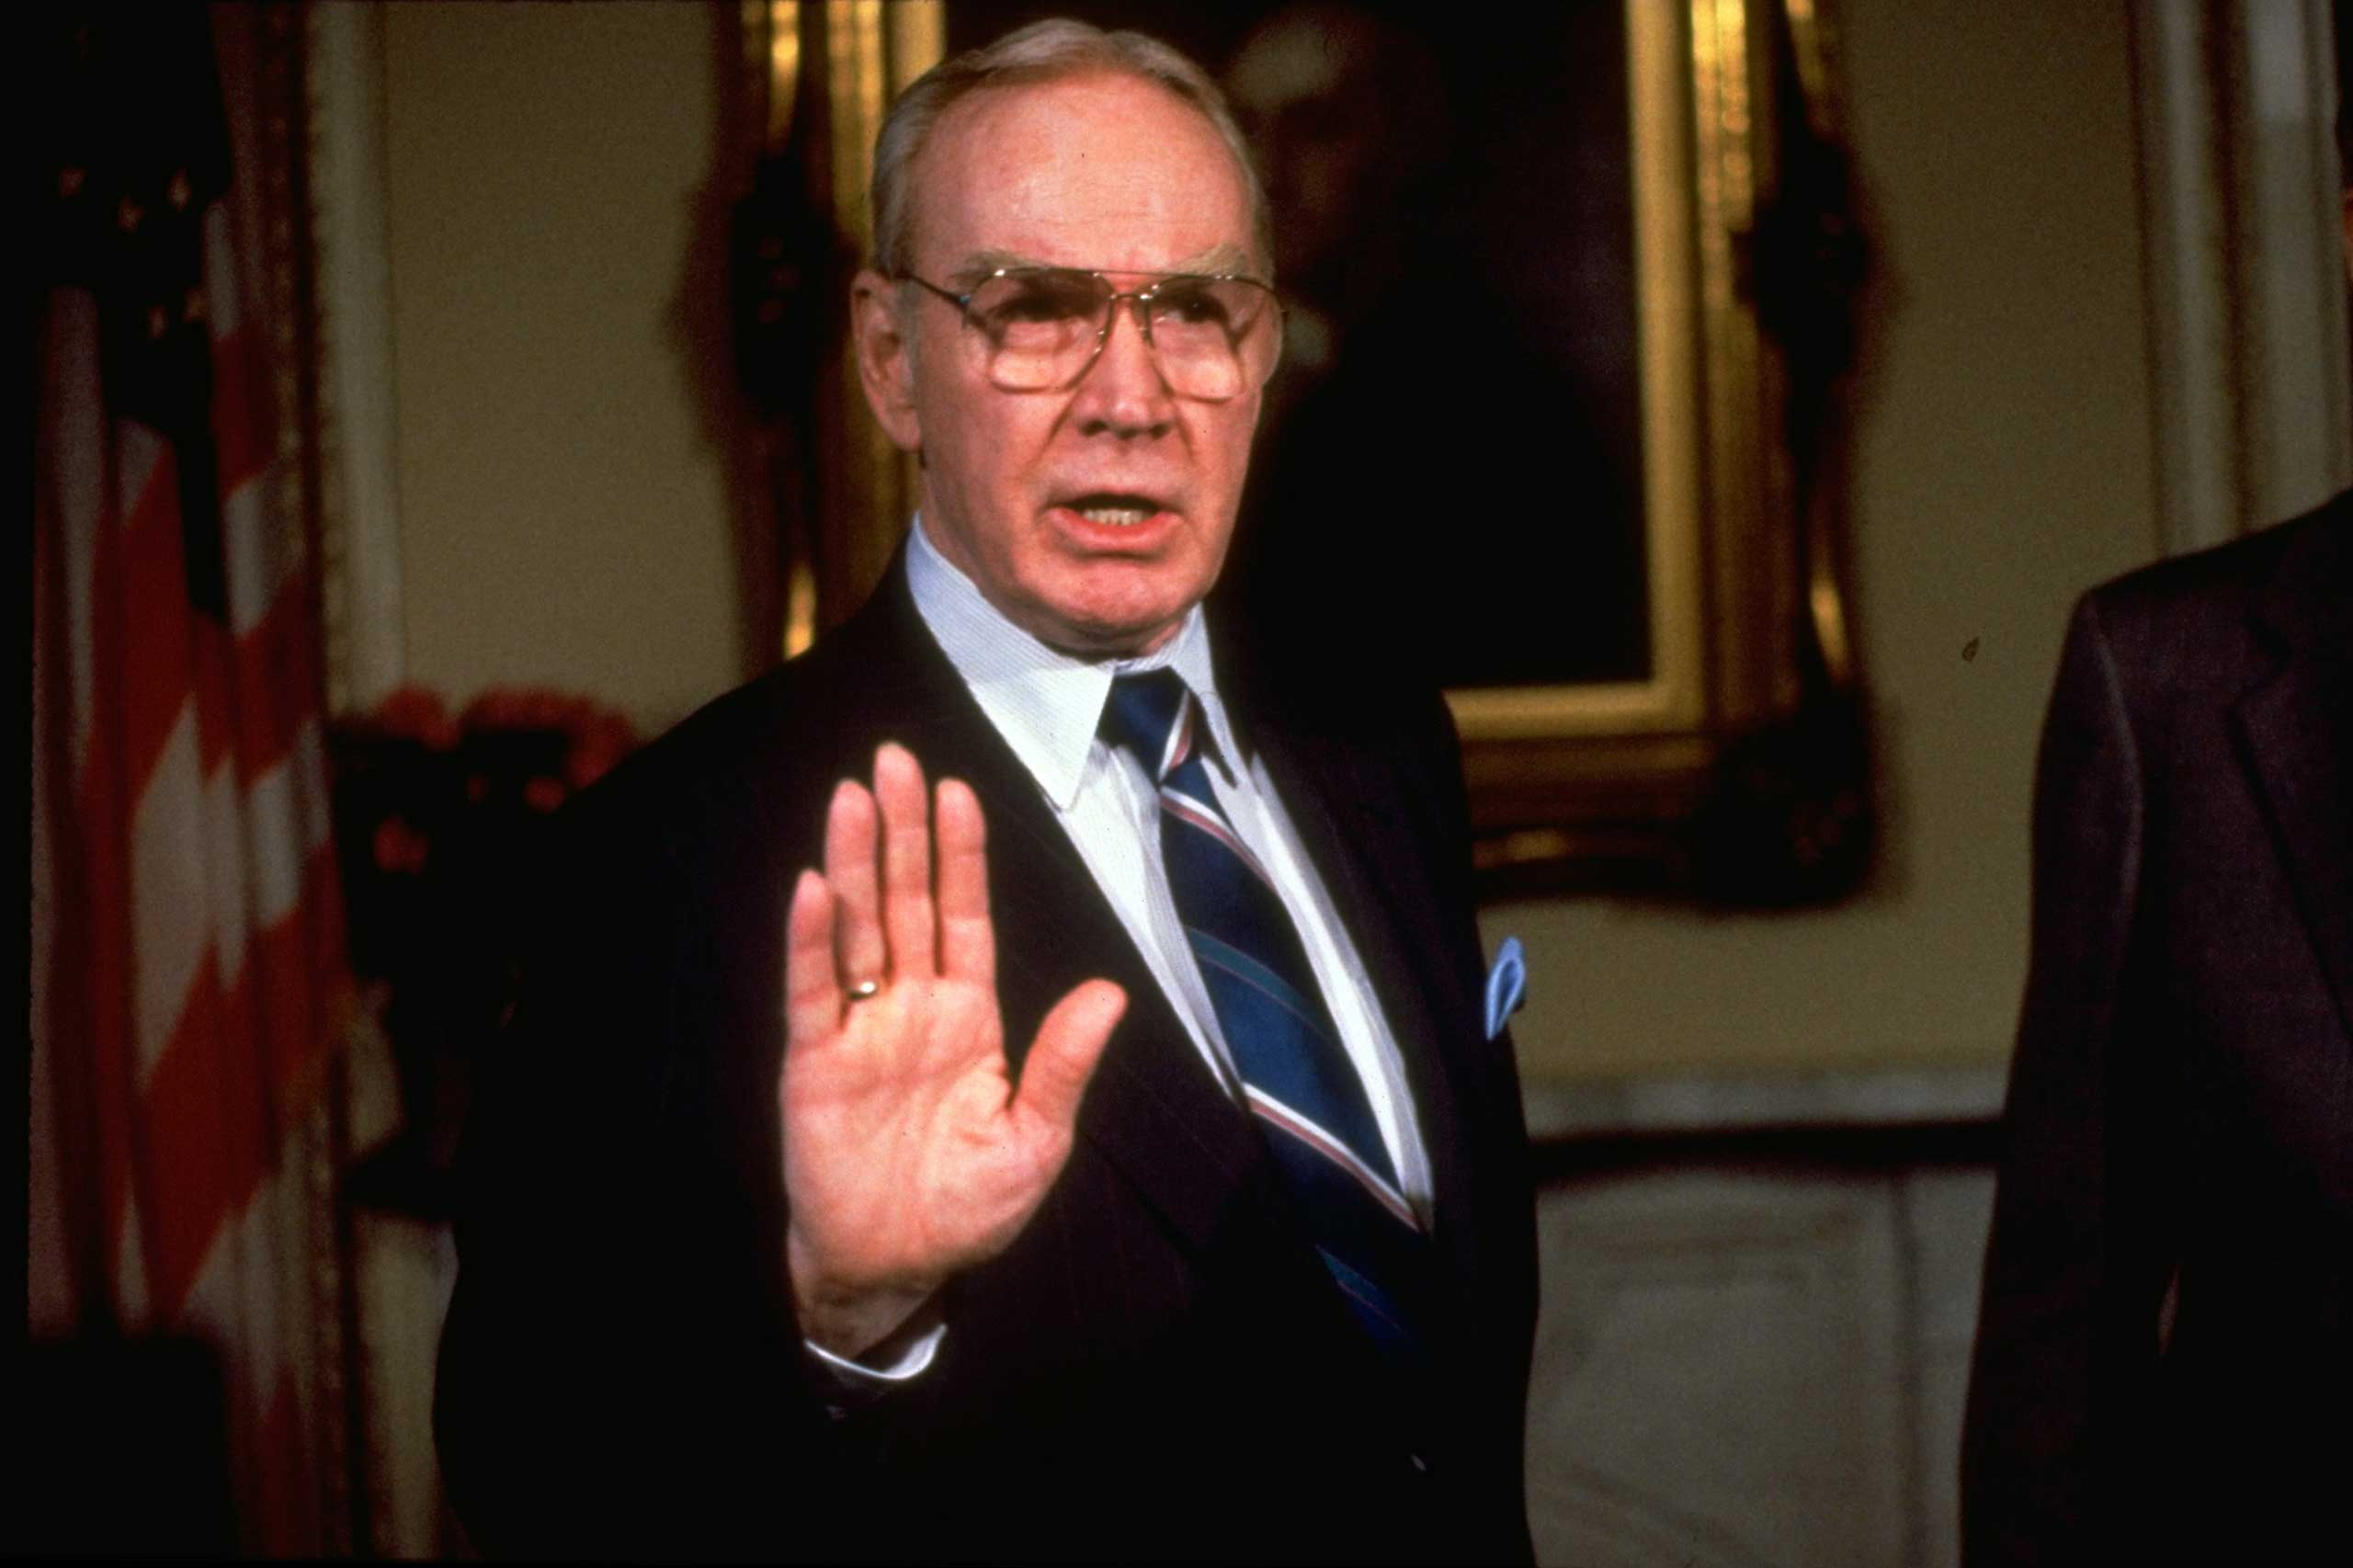 House Speaker Jim Wright gave the response to George H.W. Bush in 1989. He resigned later that year after an ethics scandal.